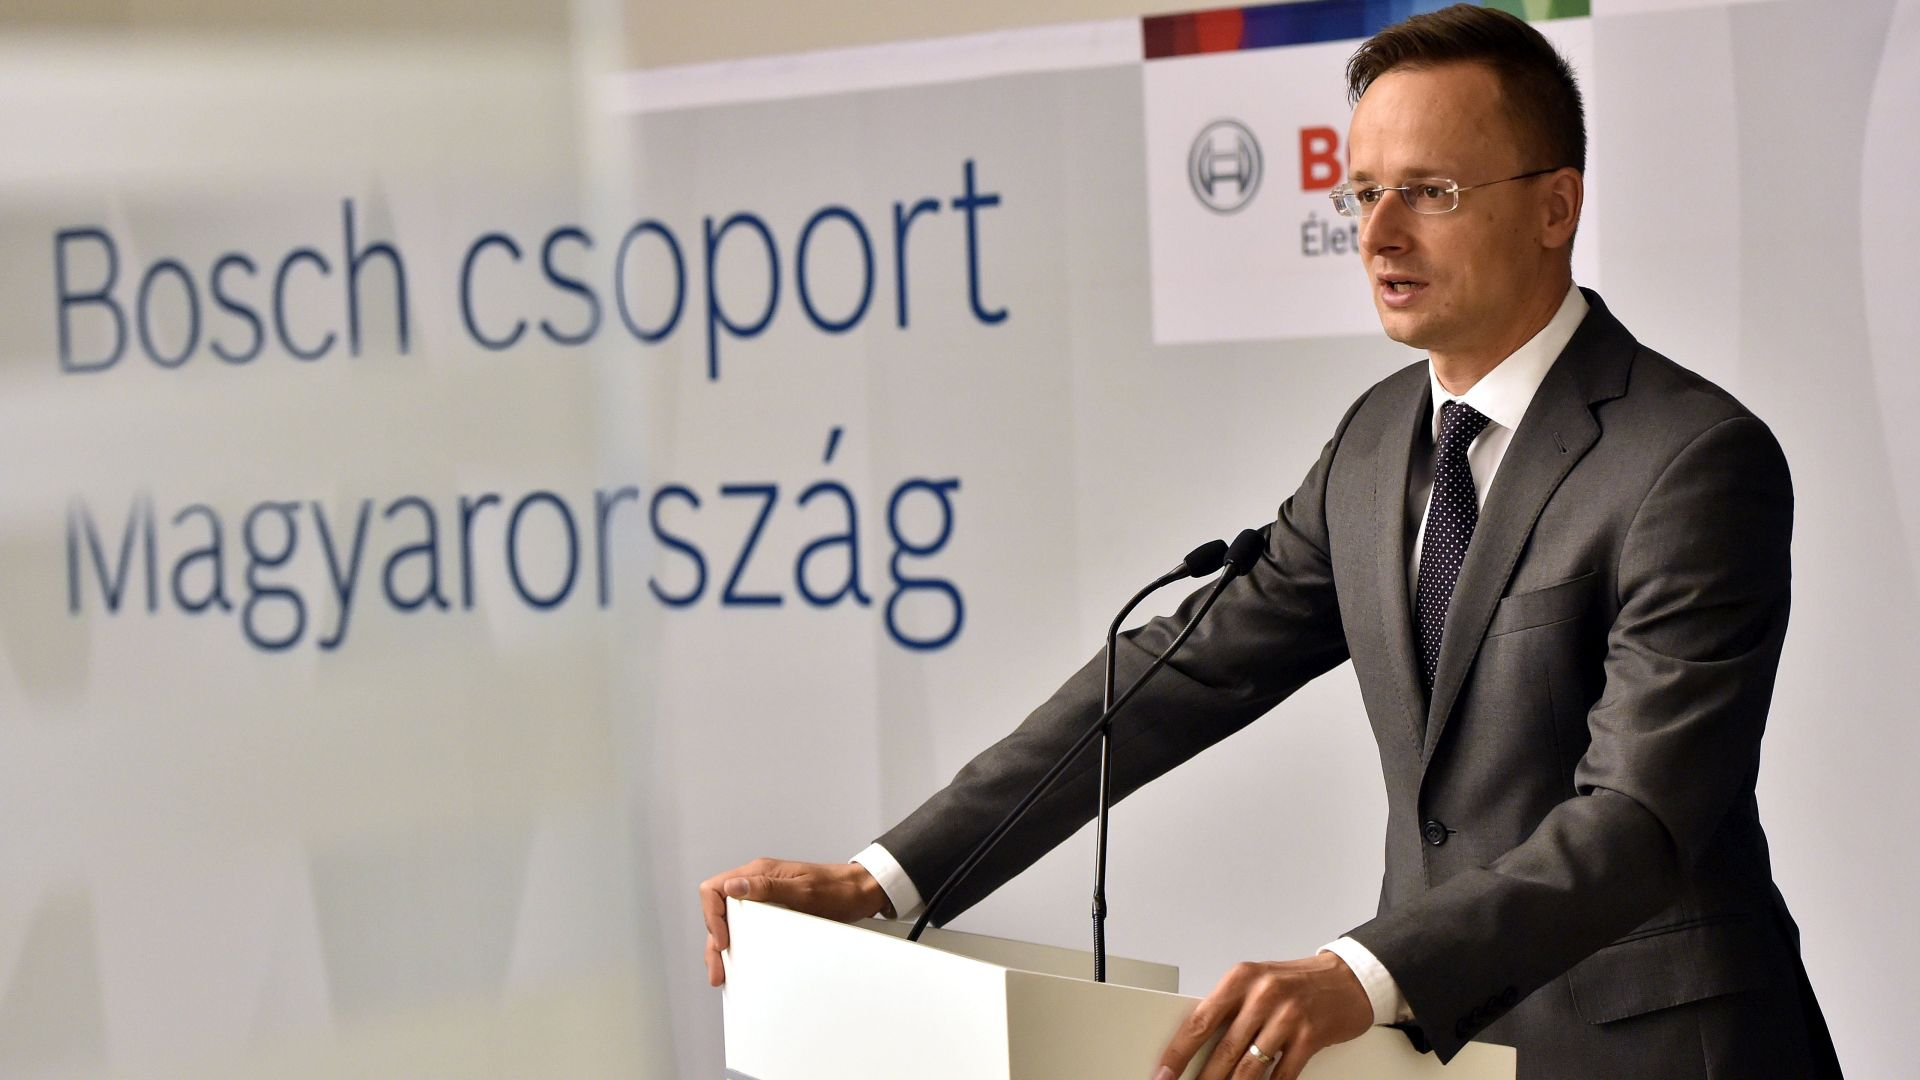 Péter Szijjártó, Minister of Foreign Affairs and Trade at the announcement of the investment